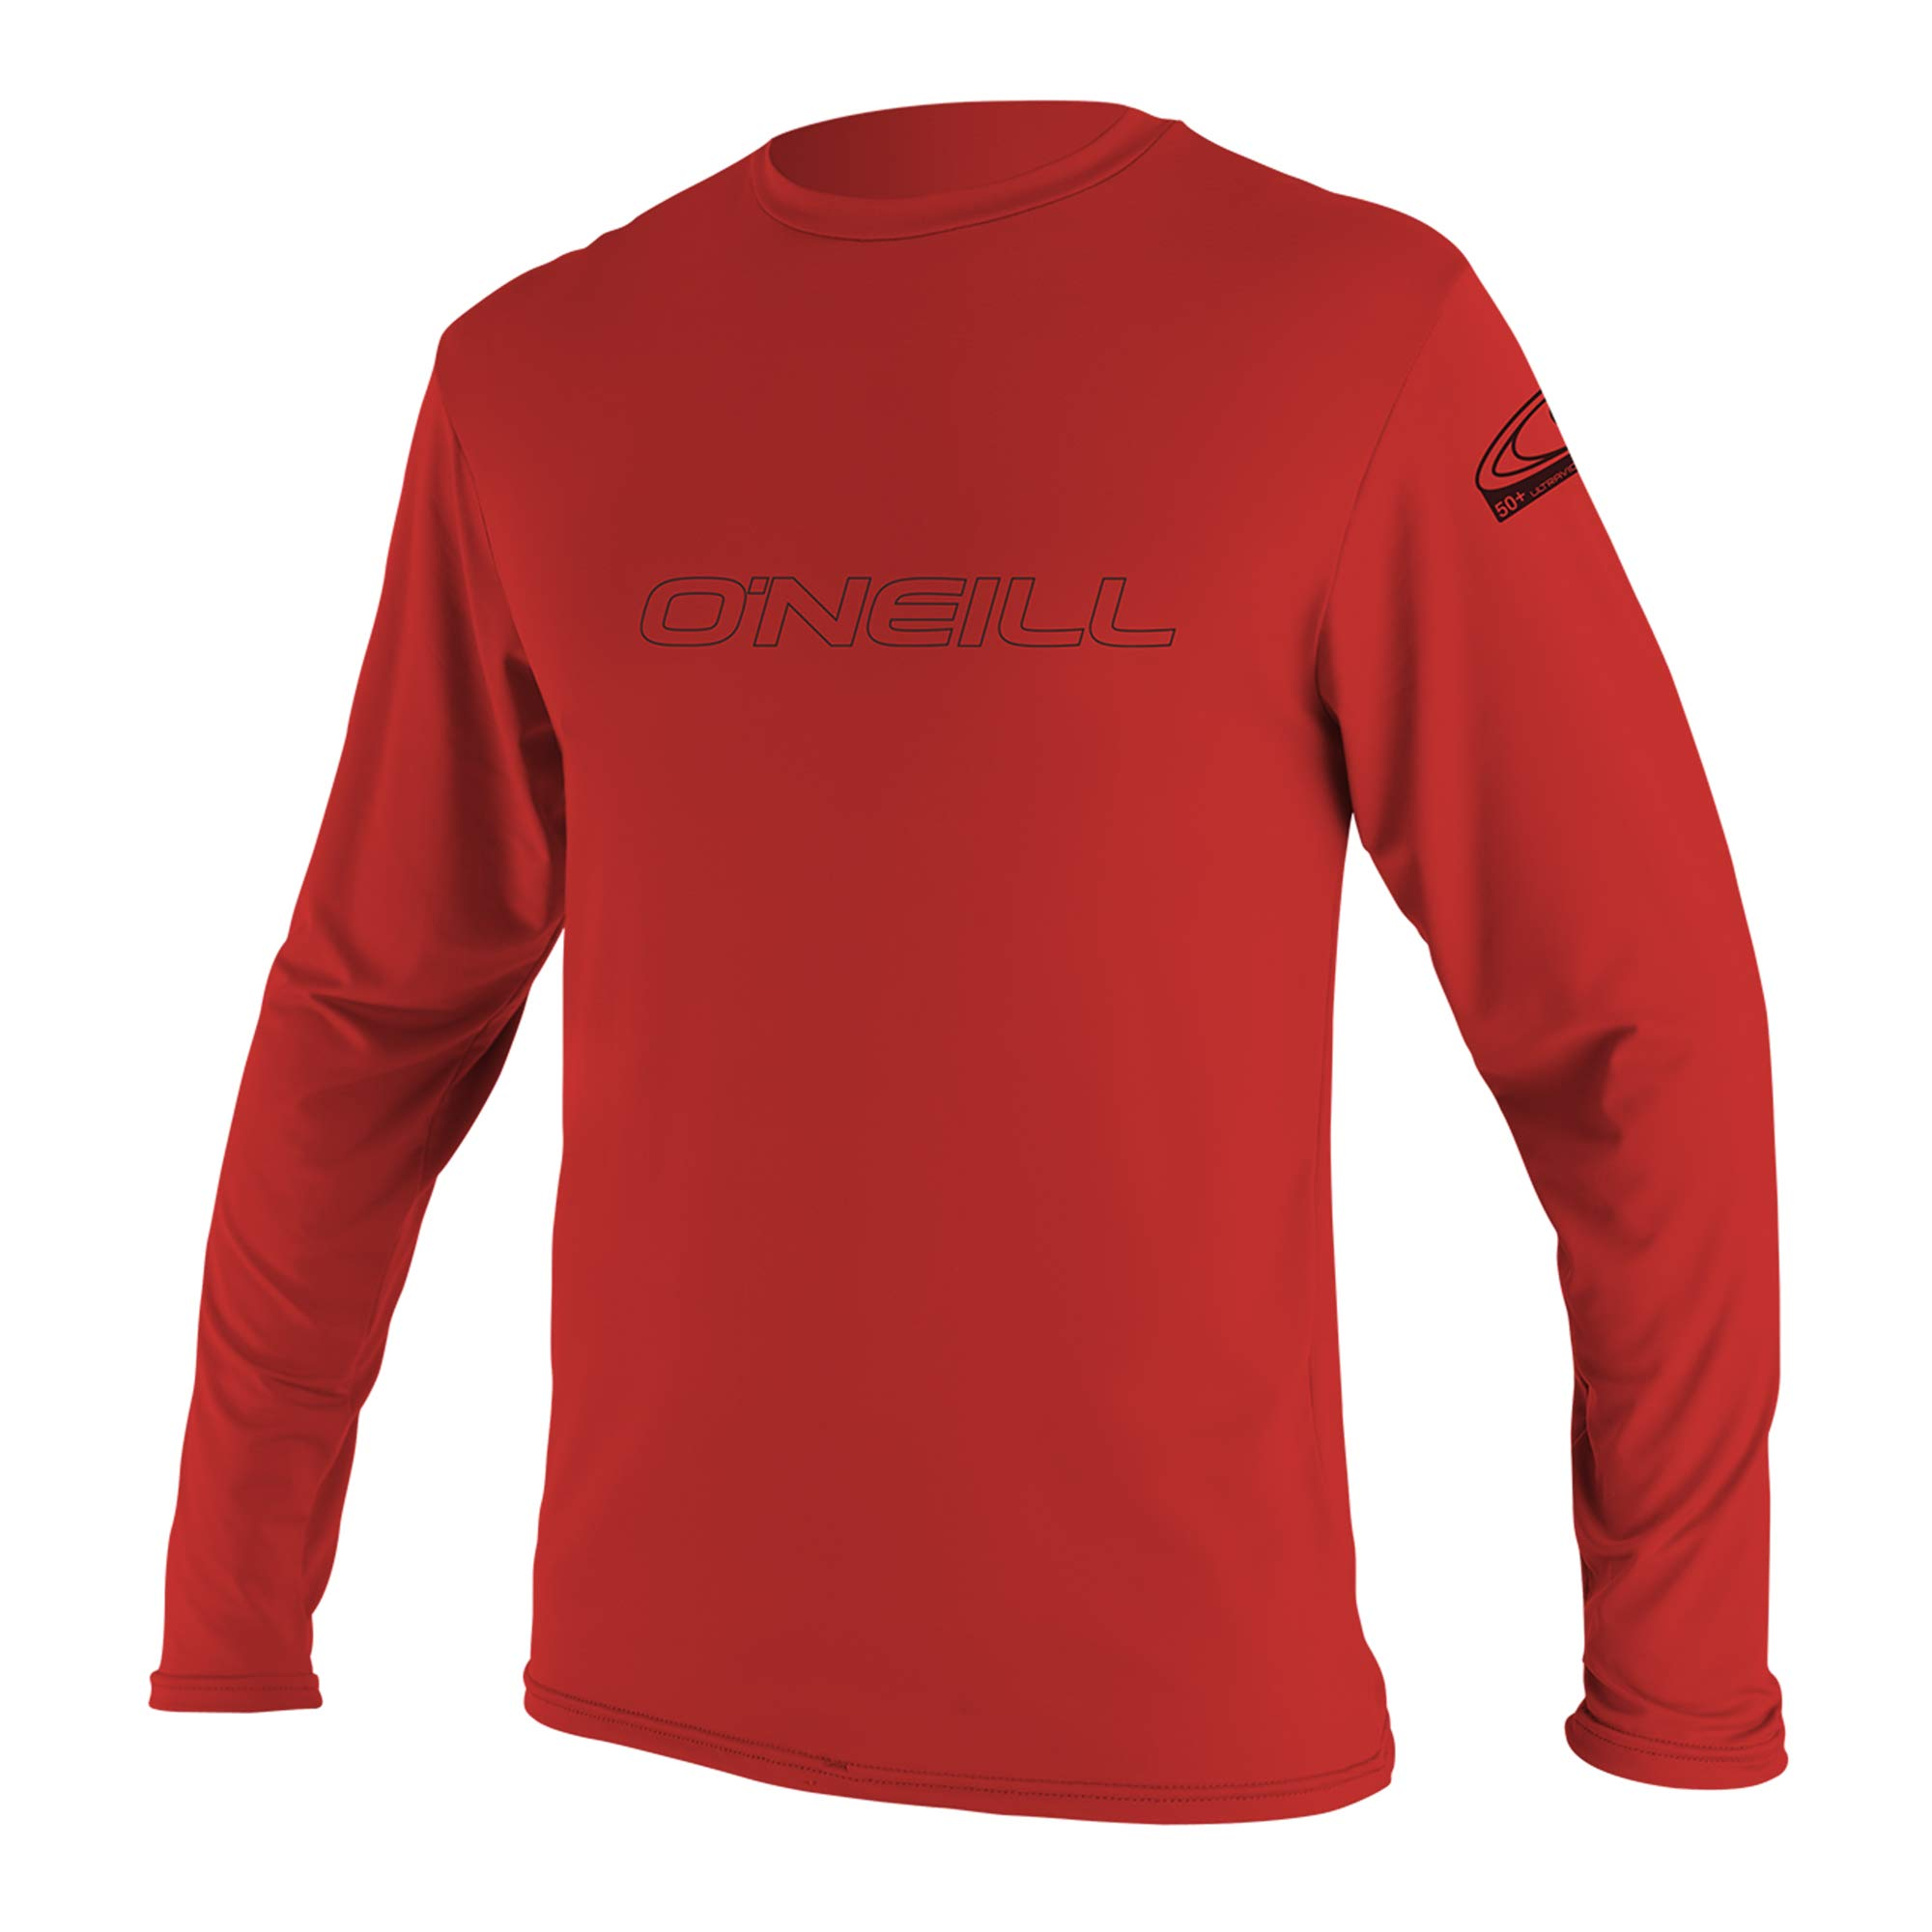 O'Neill Wetsuits Youth Basic Skins UPF 50+ Long Sleeve Sun Shirt, Red, Size 4